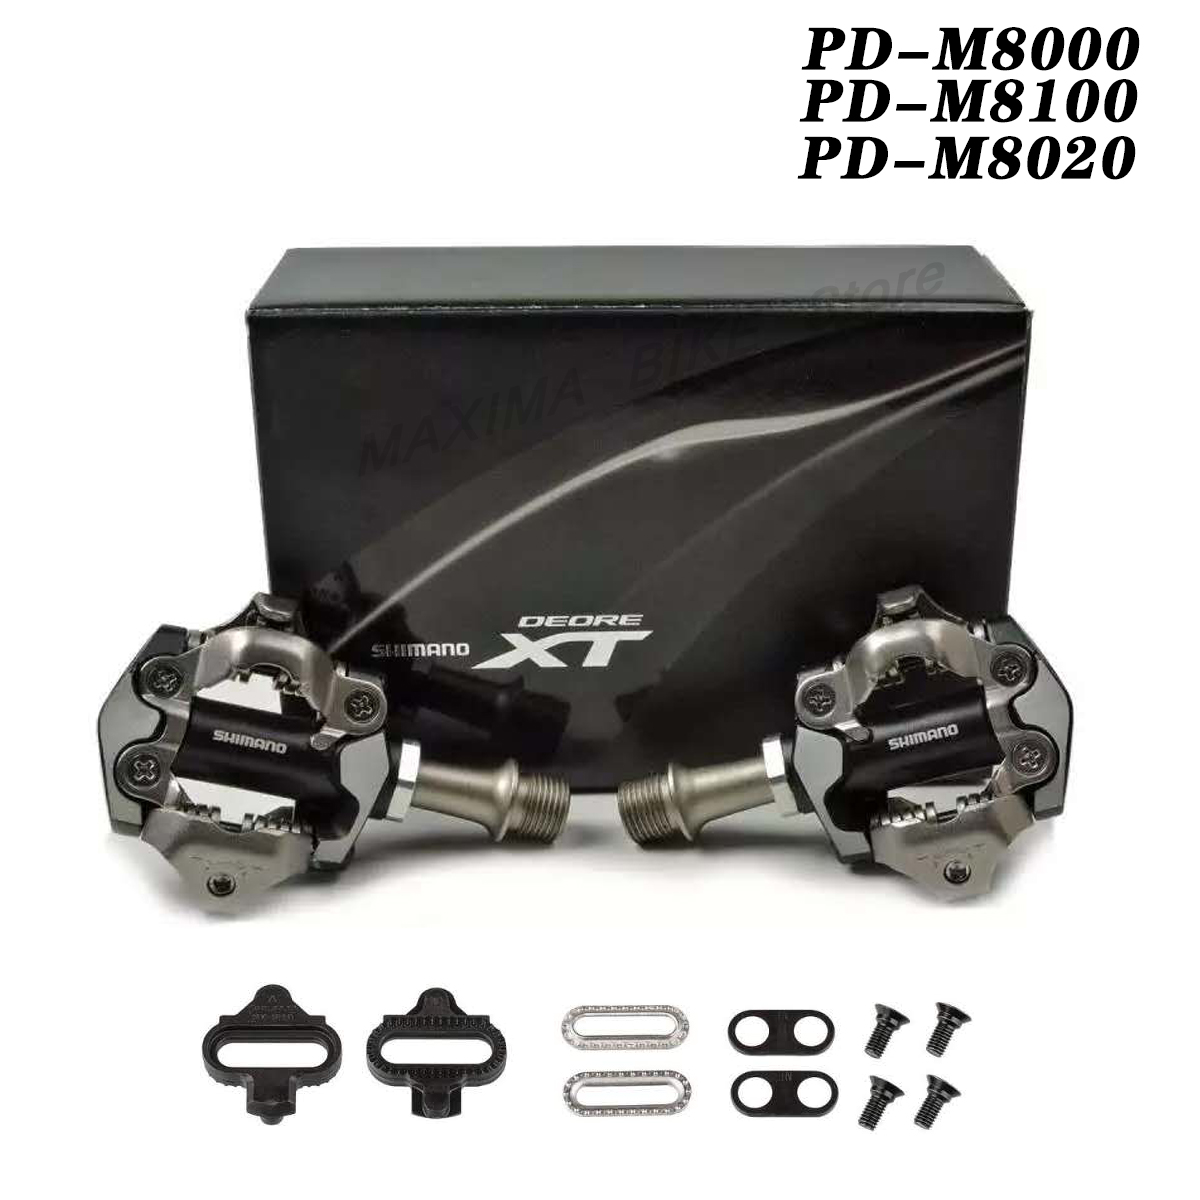 New DEORE XT PD-M8000 M8100 M8020 Self-Locking SPD Pedals MTB Components Using for Bicycle Racing Mountain Bike Parts